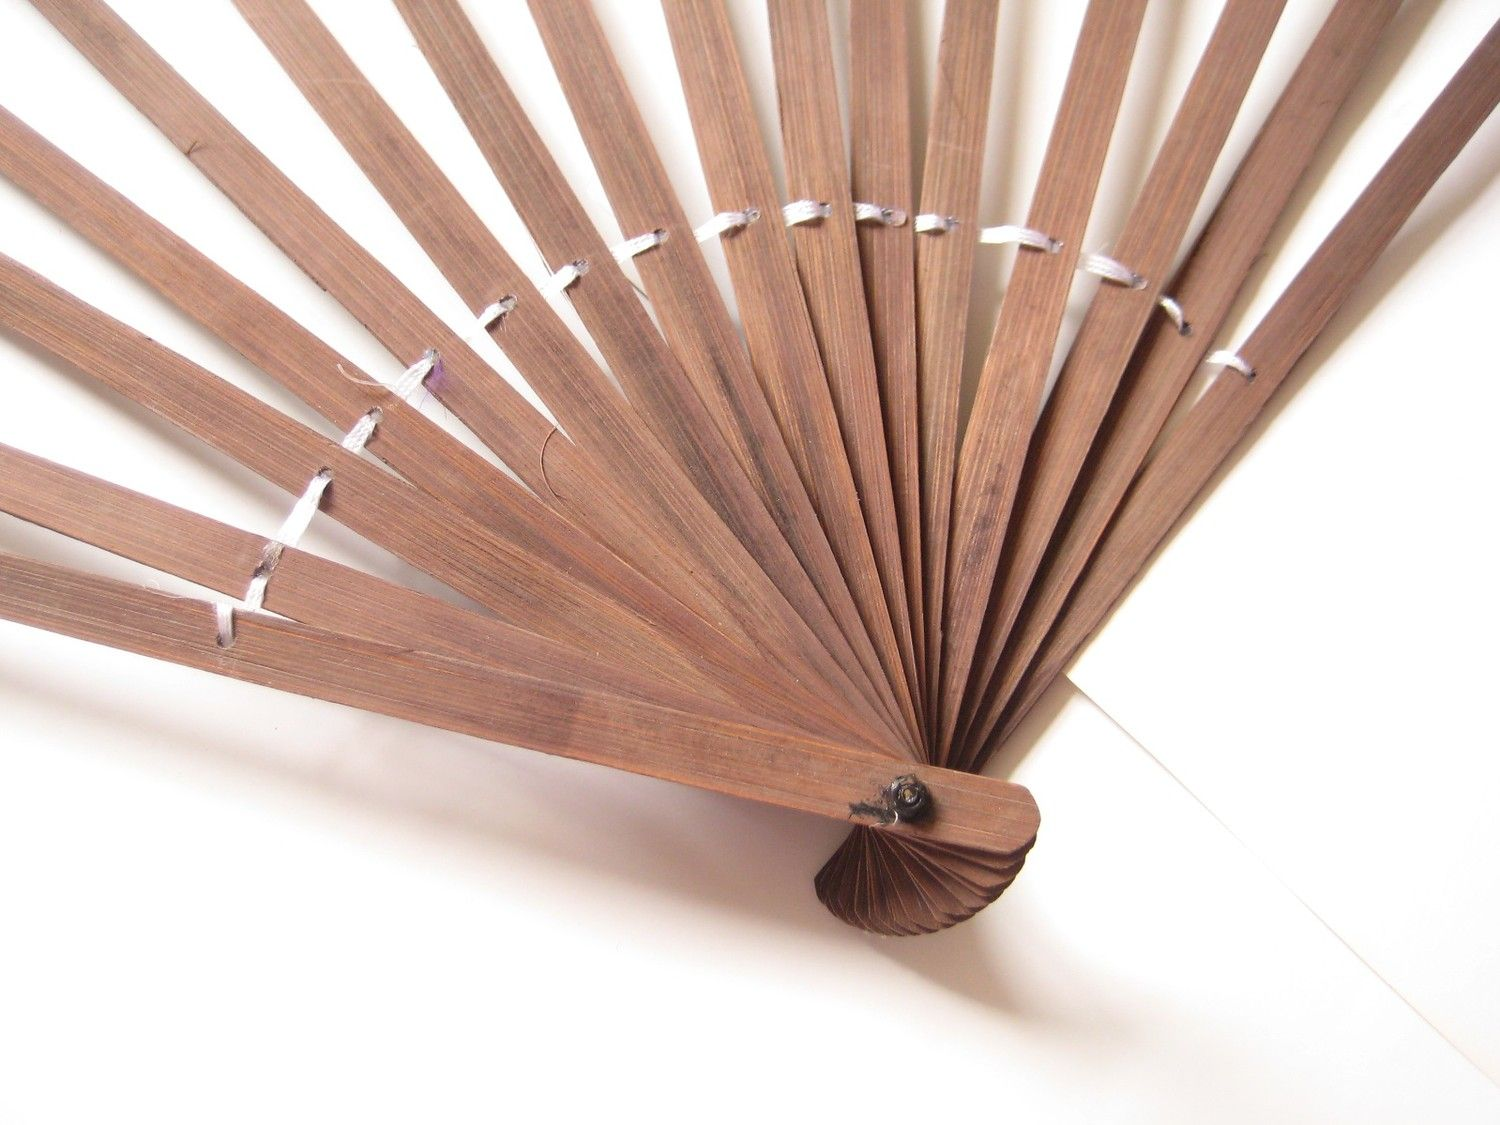 Diy Air Conditioner No Electricity Two Bamboo Fan Staves By Suppliesfromnadia On Etsy No